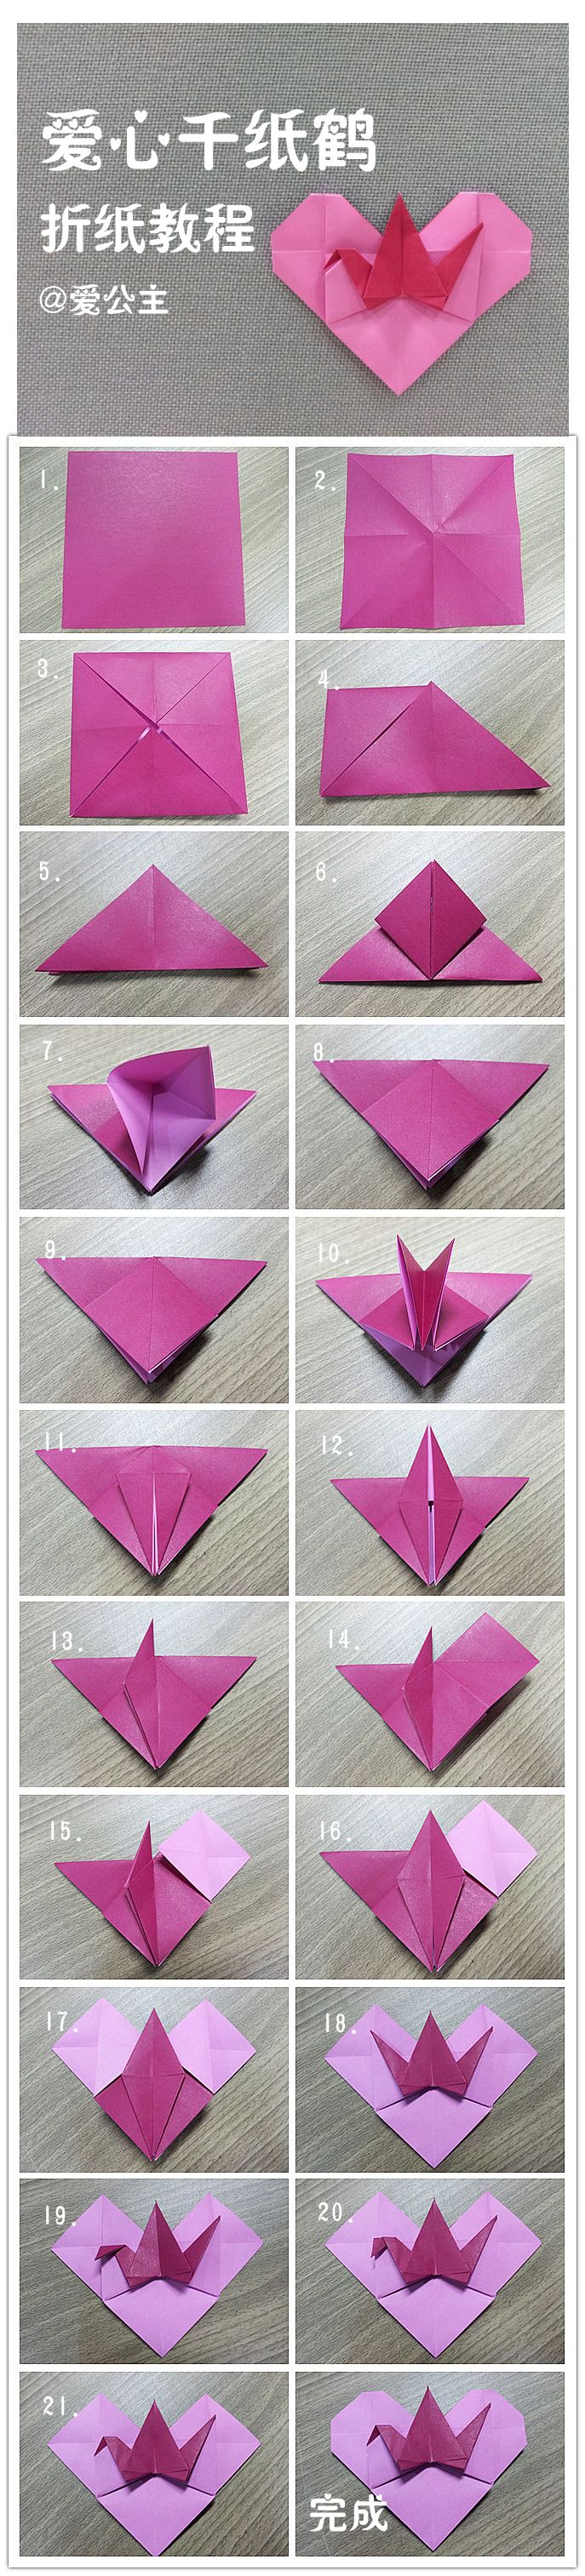 Origami lovely heart crane thats the exact translation of it origami lovely heart crane thats the exact translation of jeuxipadfo Image collections